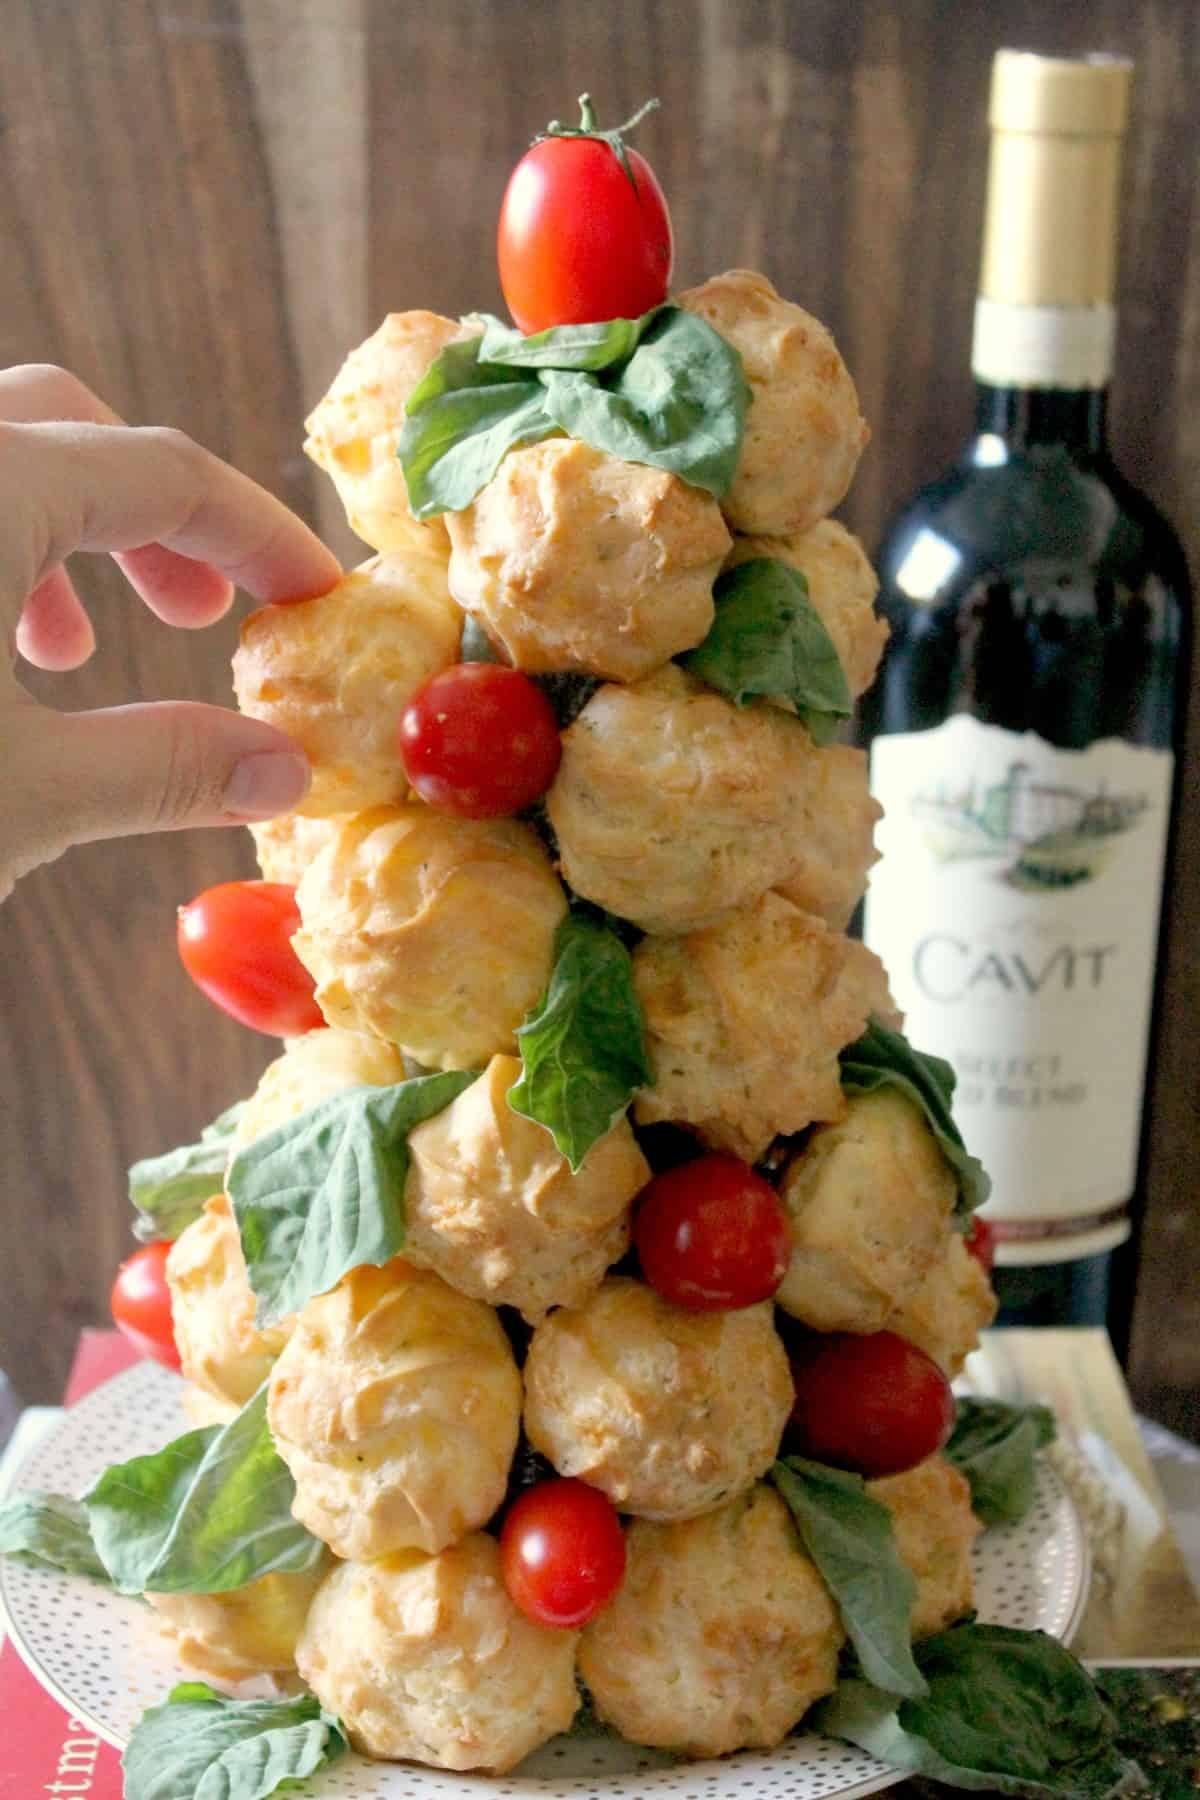 Italian Cheese Puffs. Light, airy and full of flavor, these cheese puffs make a wonderful appetizer. Serve alongside Cavit Wine for an elegant party bite!